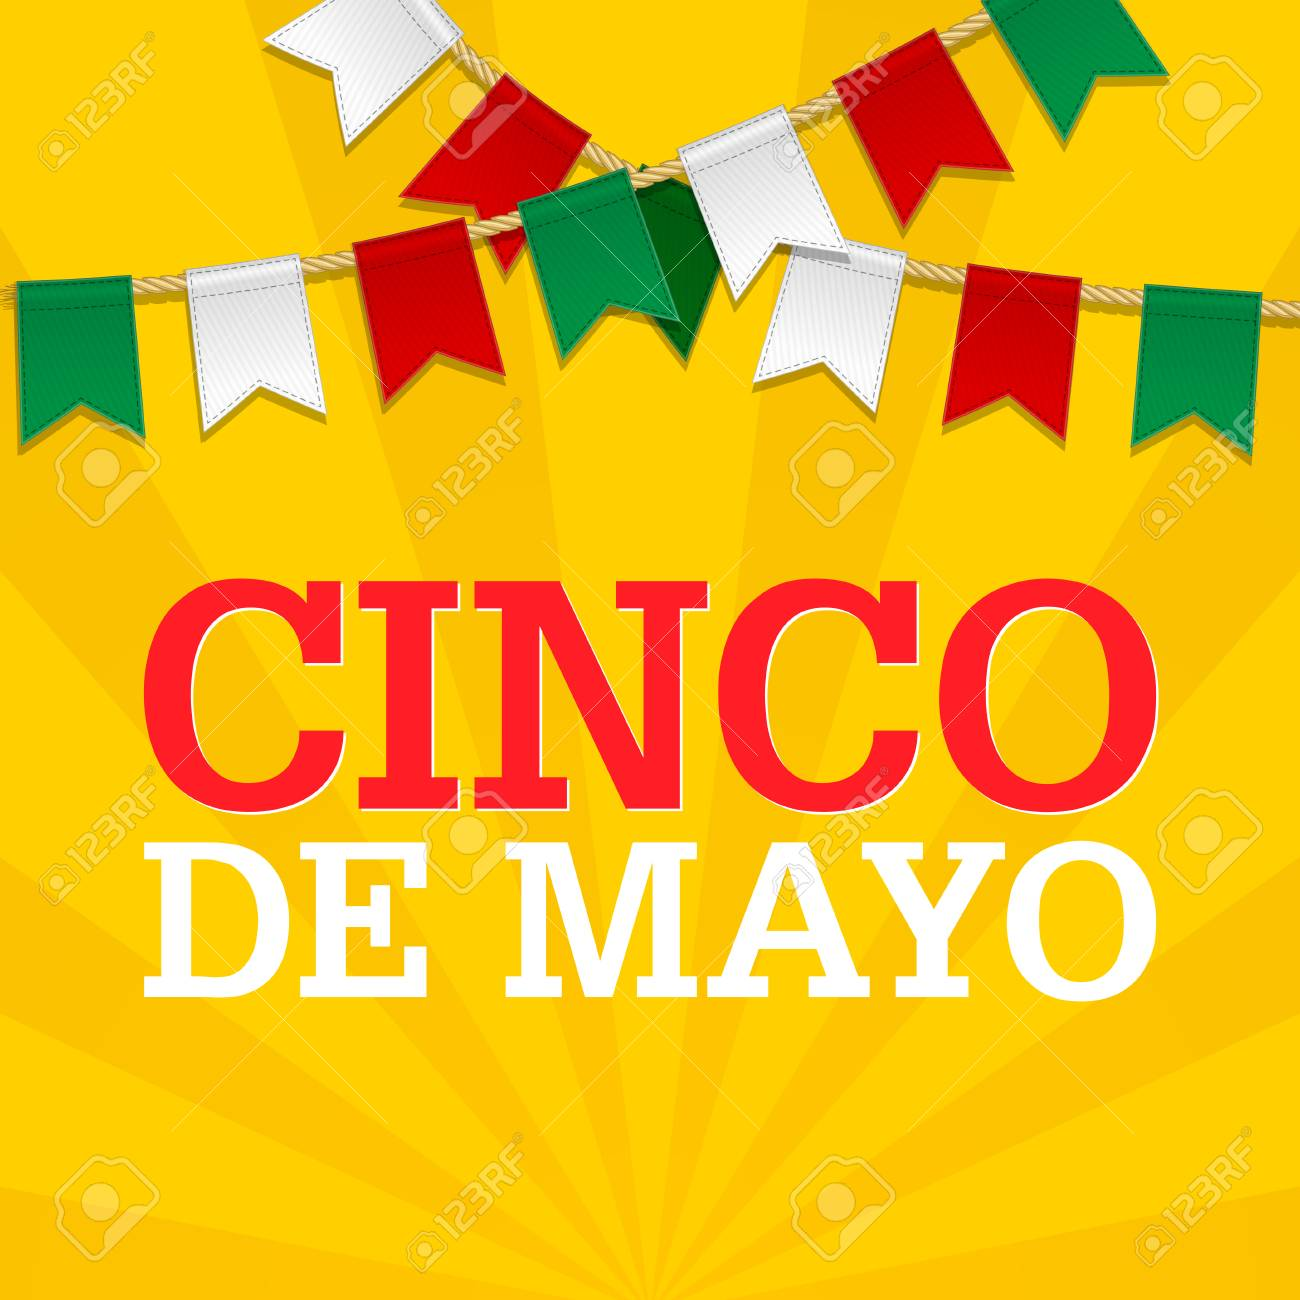 cinco de mayo background for a celebration held on may 5 mexican